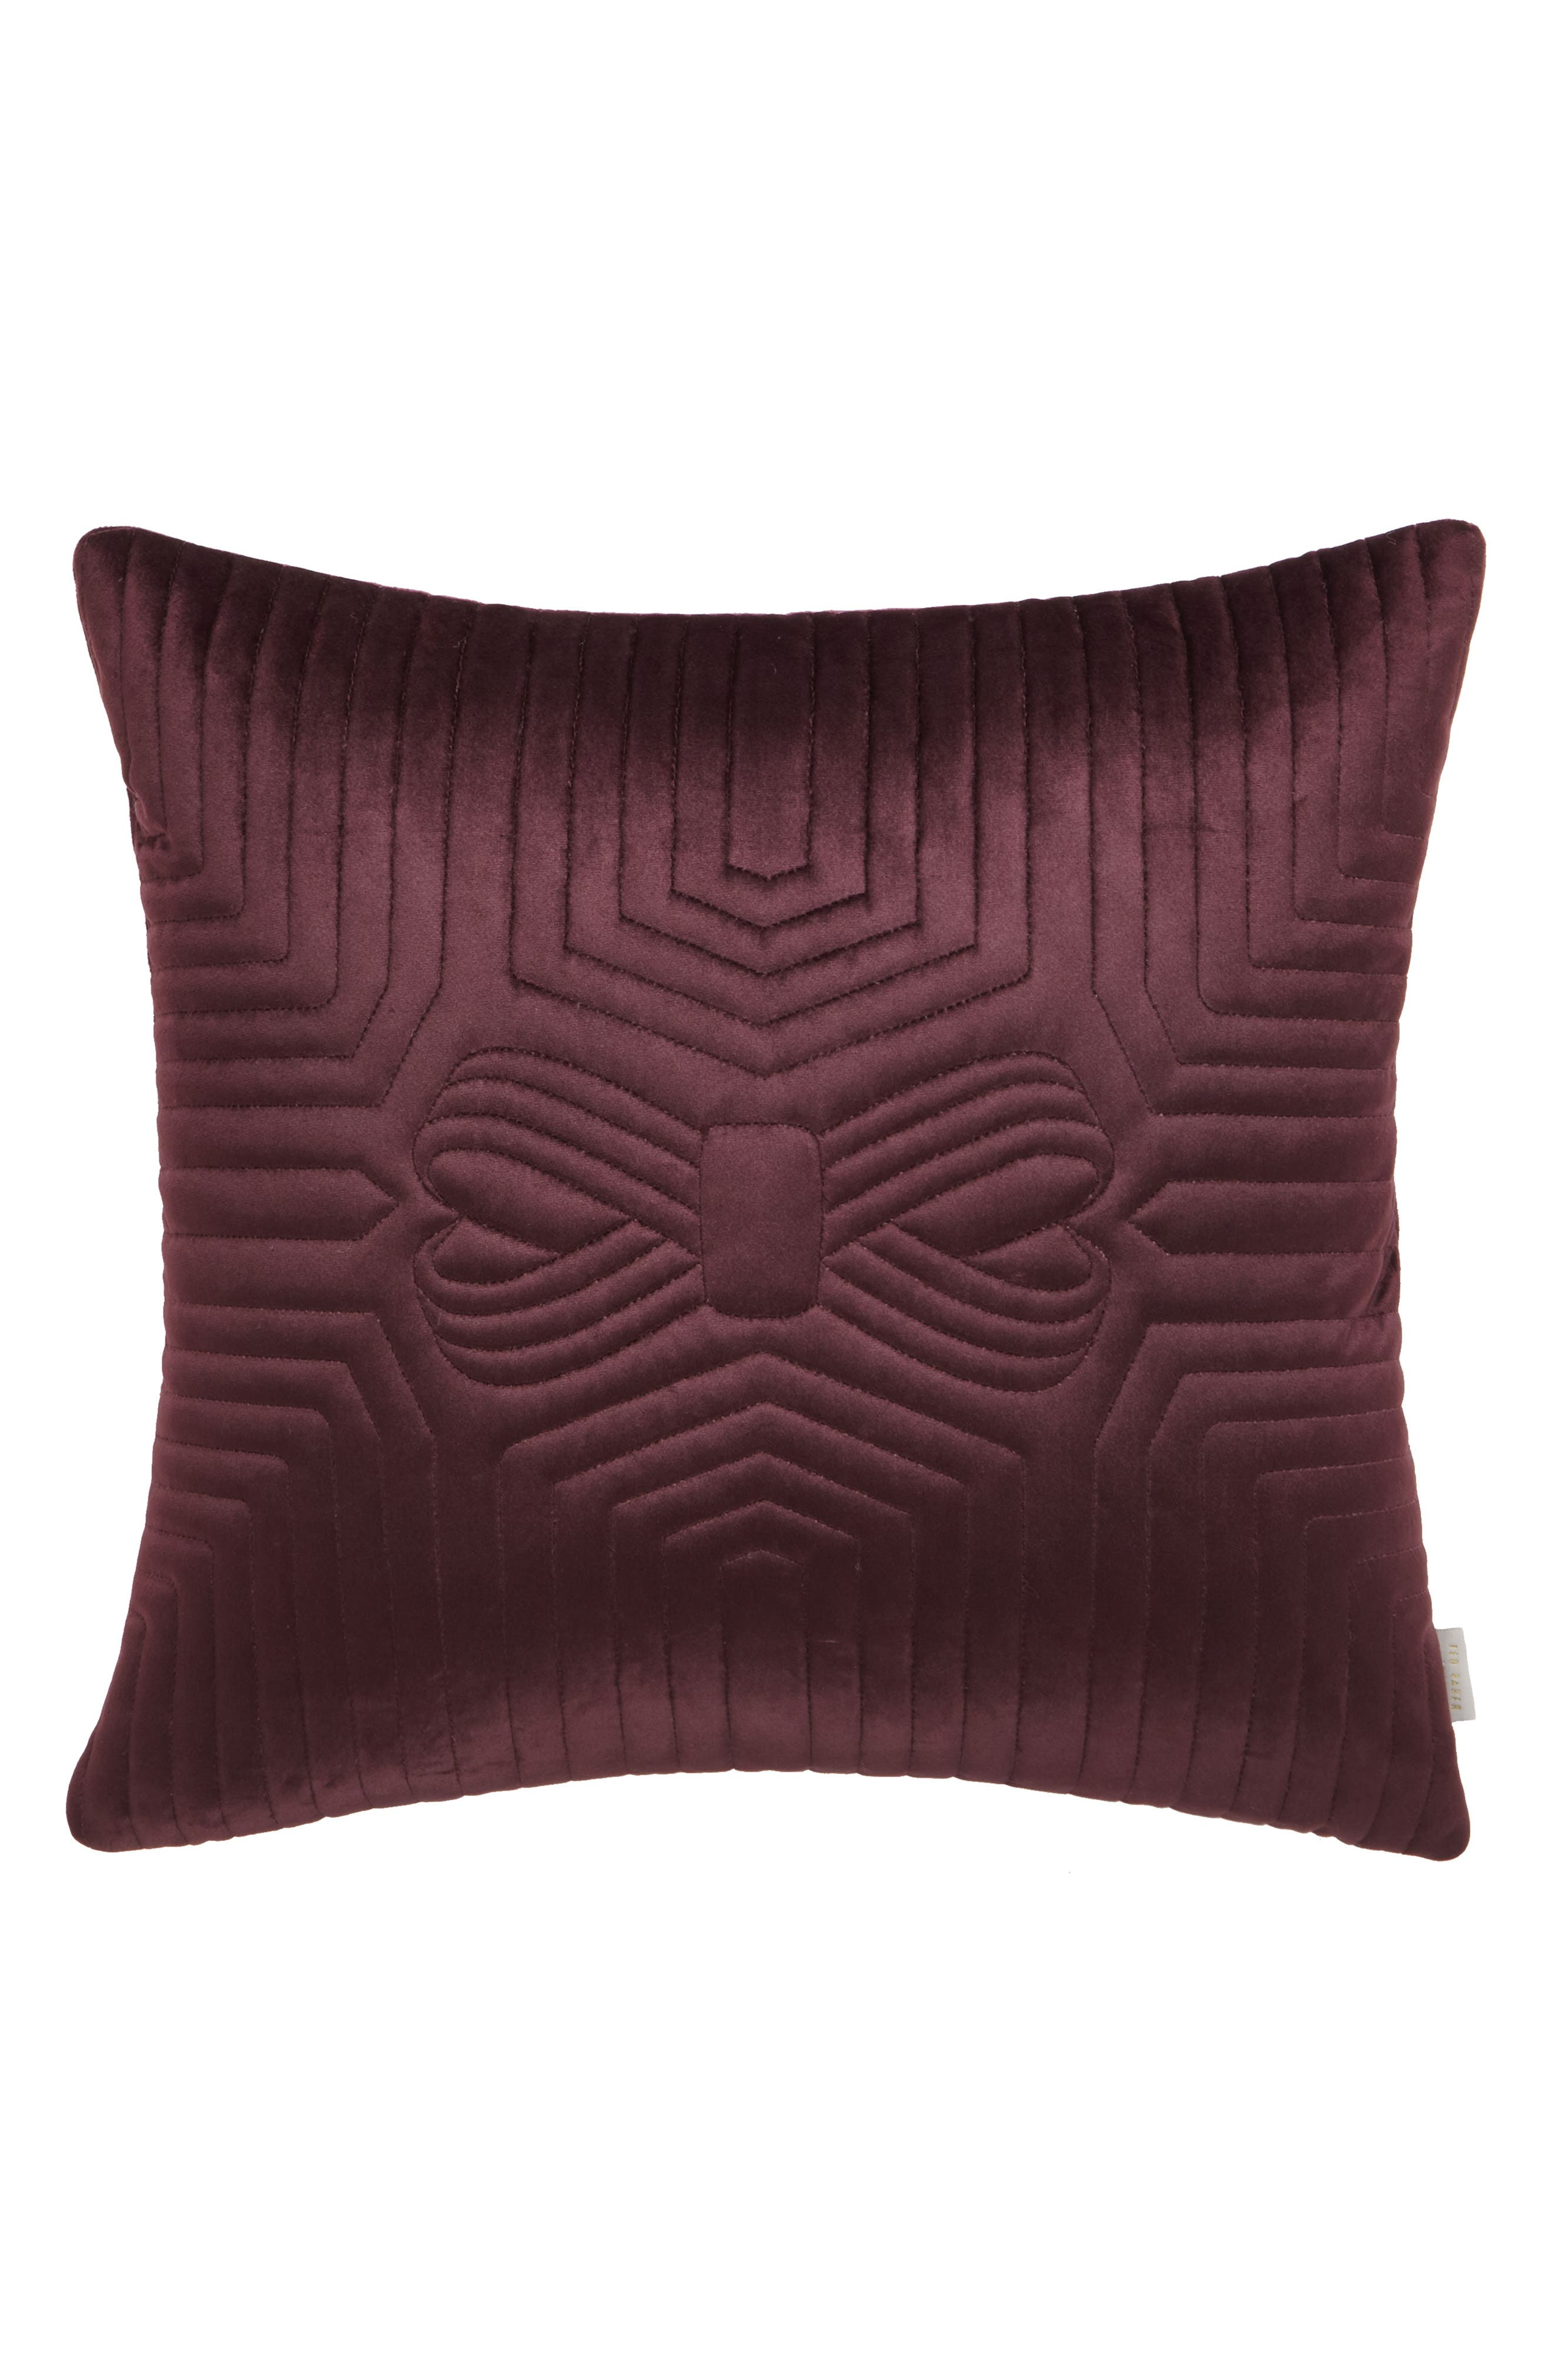 Quilted Velvet Accent Pillow,                             Main thumbnail 1, color,                             Wine